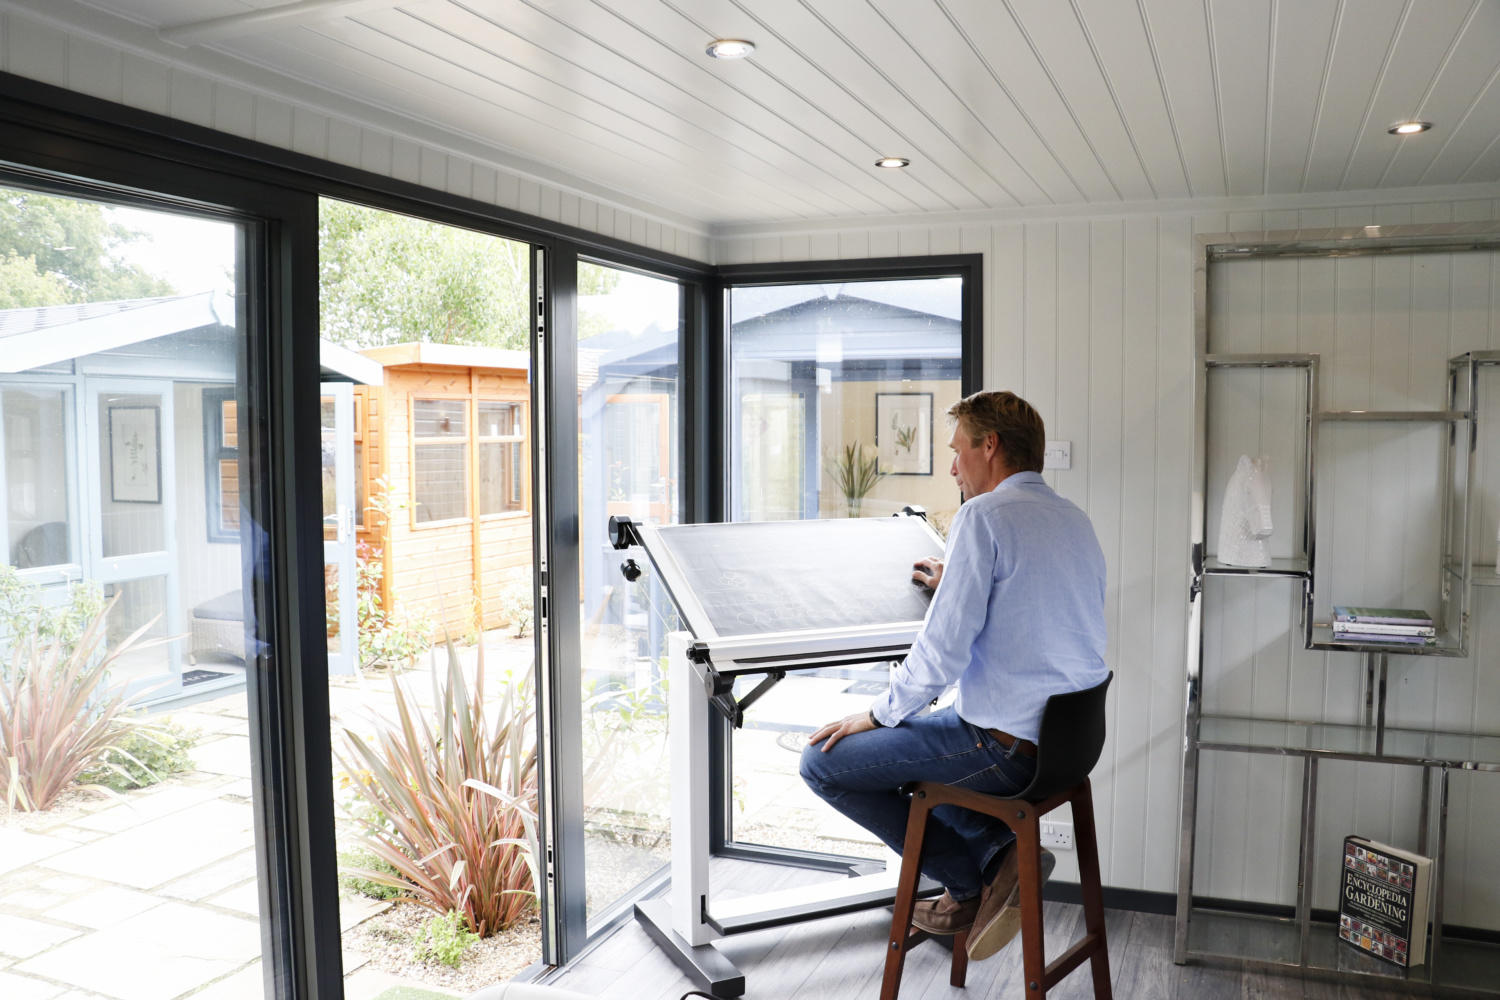 Tom Gadsby sits in the window of a garden office, next to his architects table with drawings and plans of a new garden